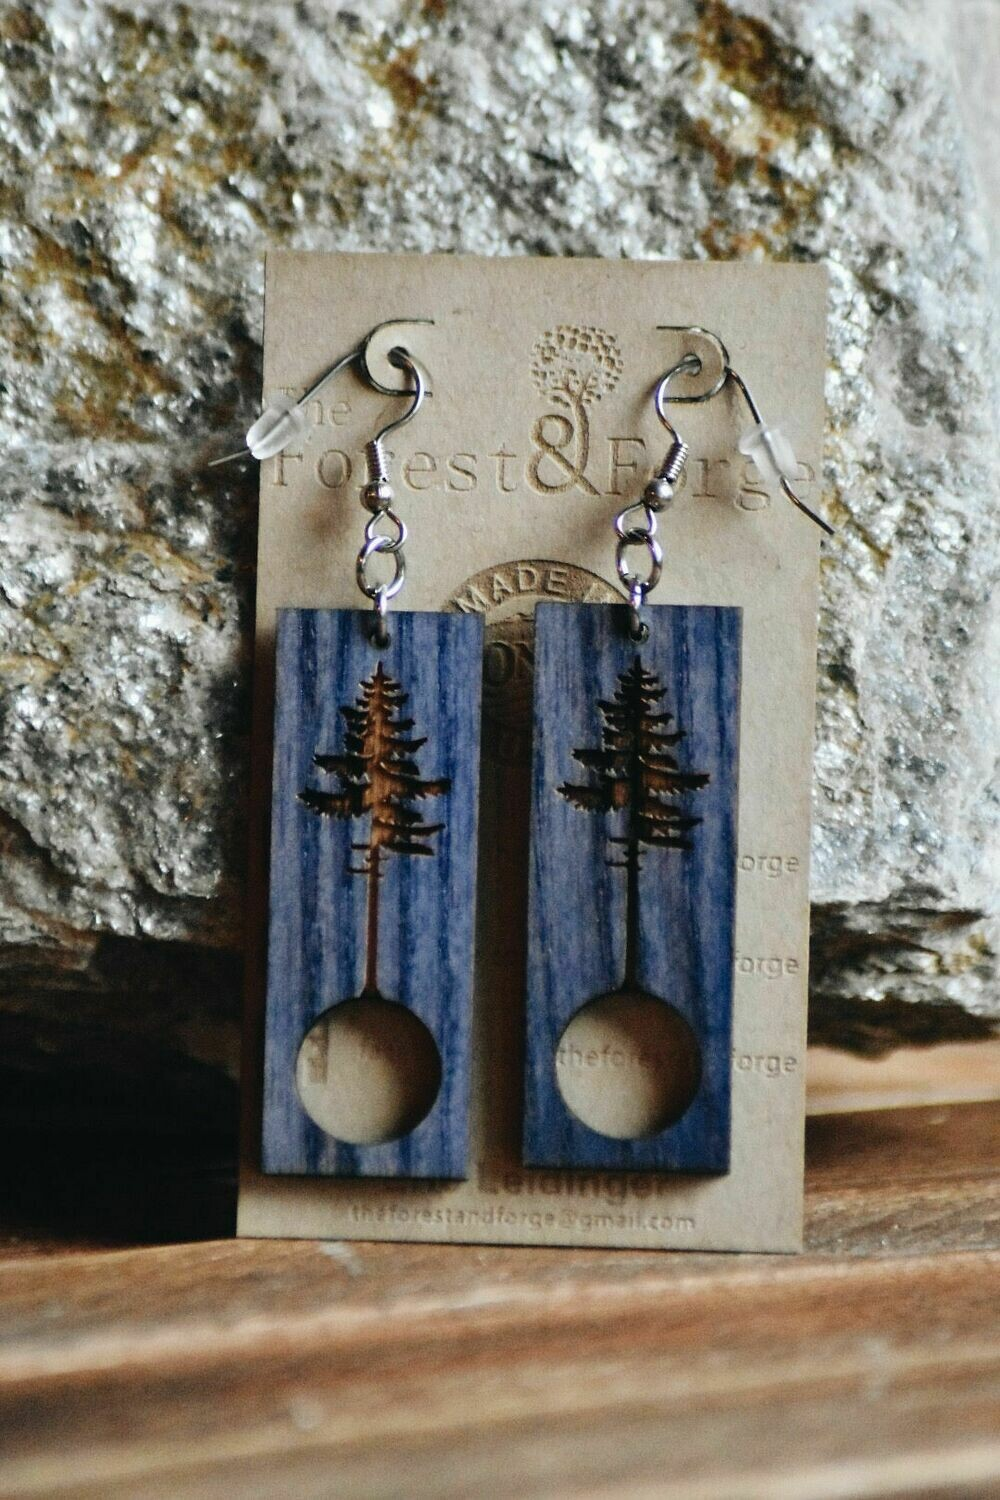 25-4 Stained Ash Wood Earrings $24